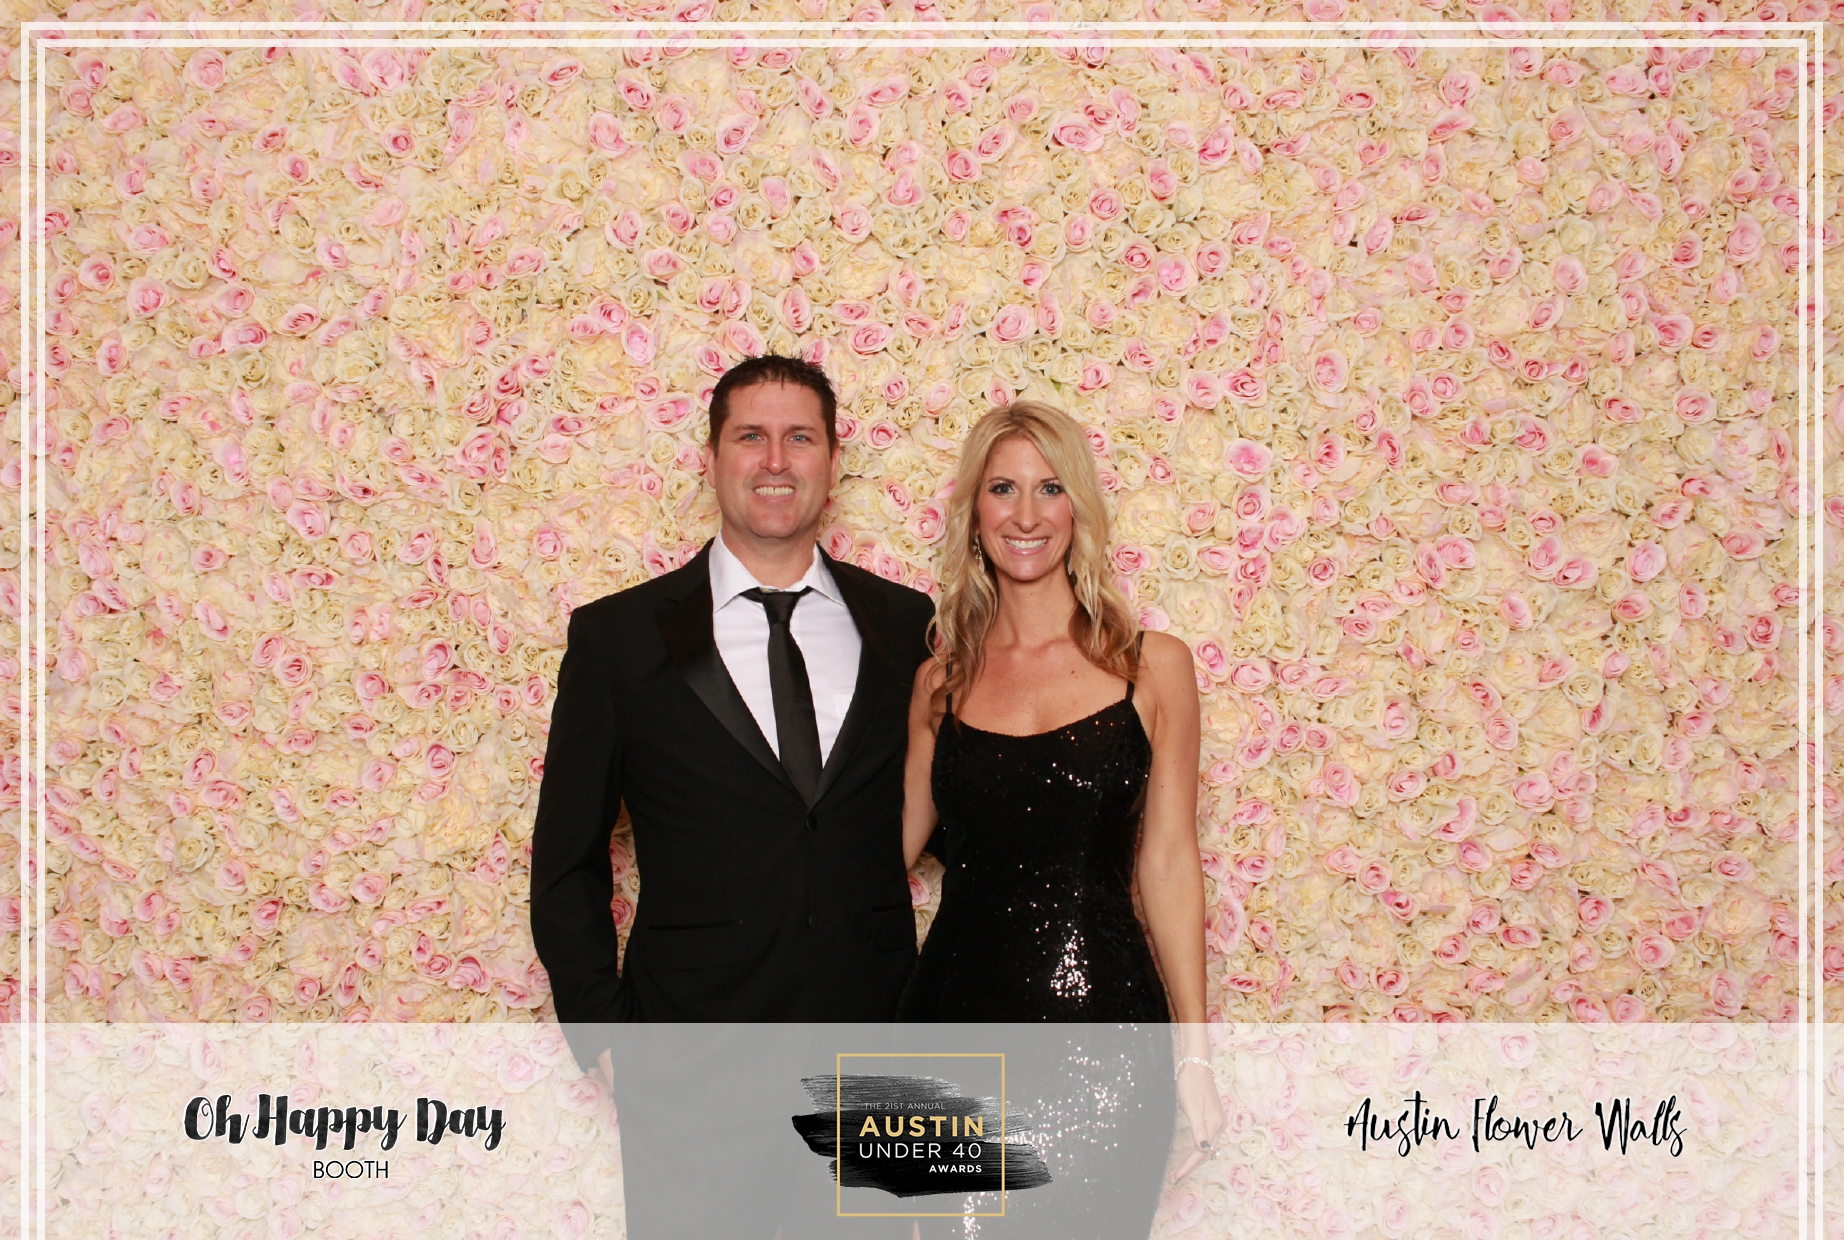 Oh Happy Day Booth - Austin Under 40-28.jpg